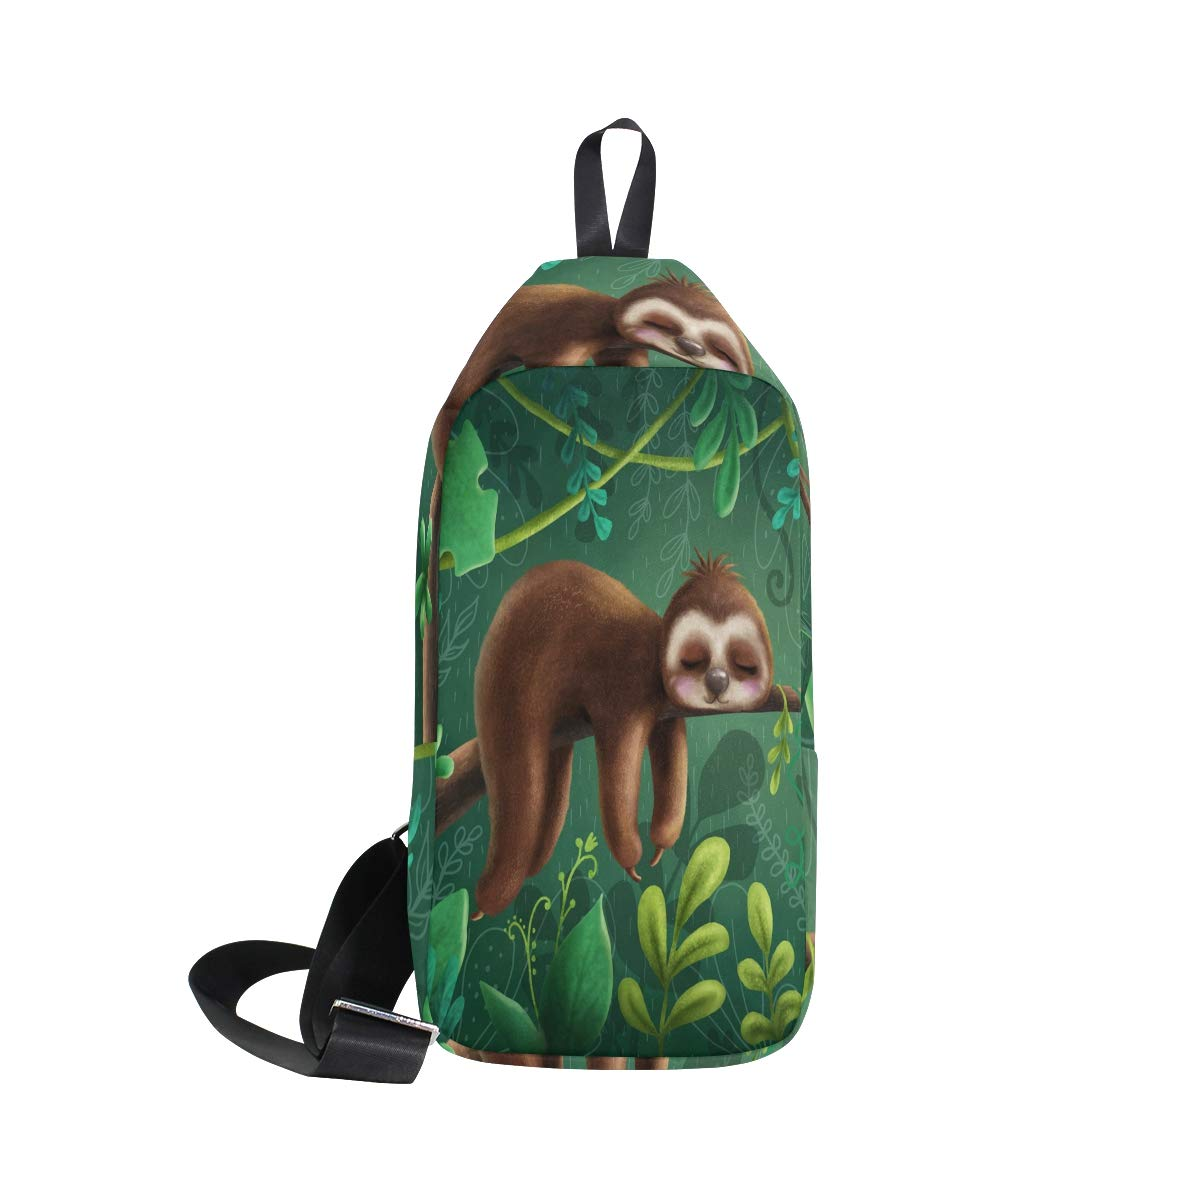 TFONE Cute Lazy Sloth Crossbody Bag Lightweight Chest Shoulder Messenger Pack Backpack Sling Bag